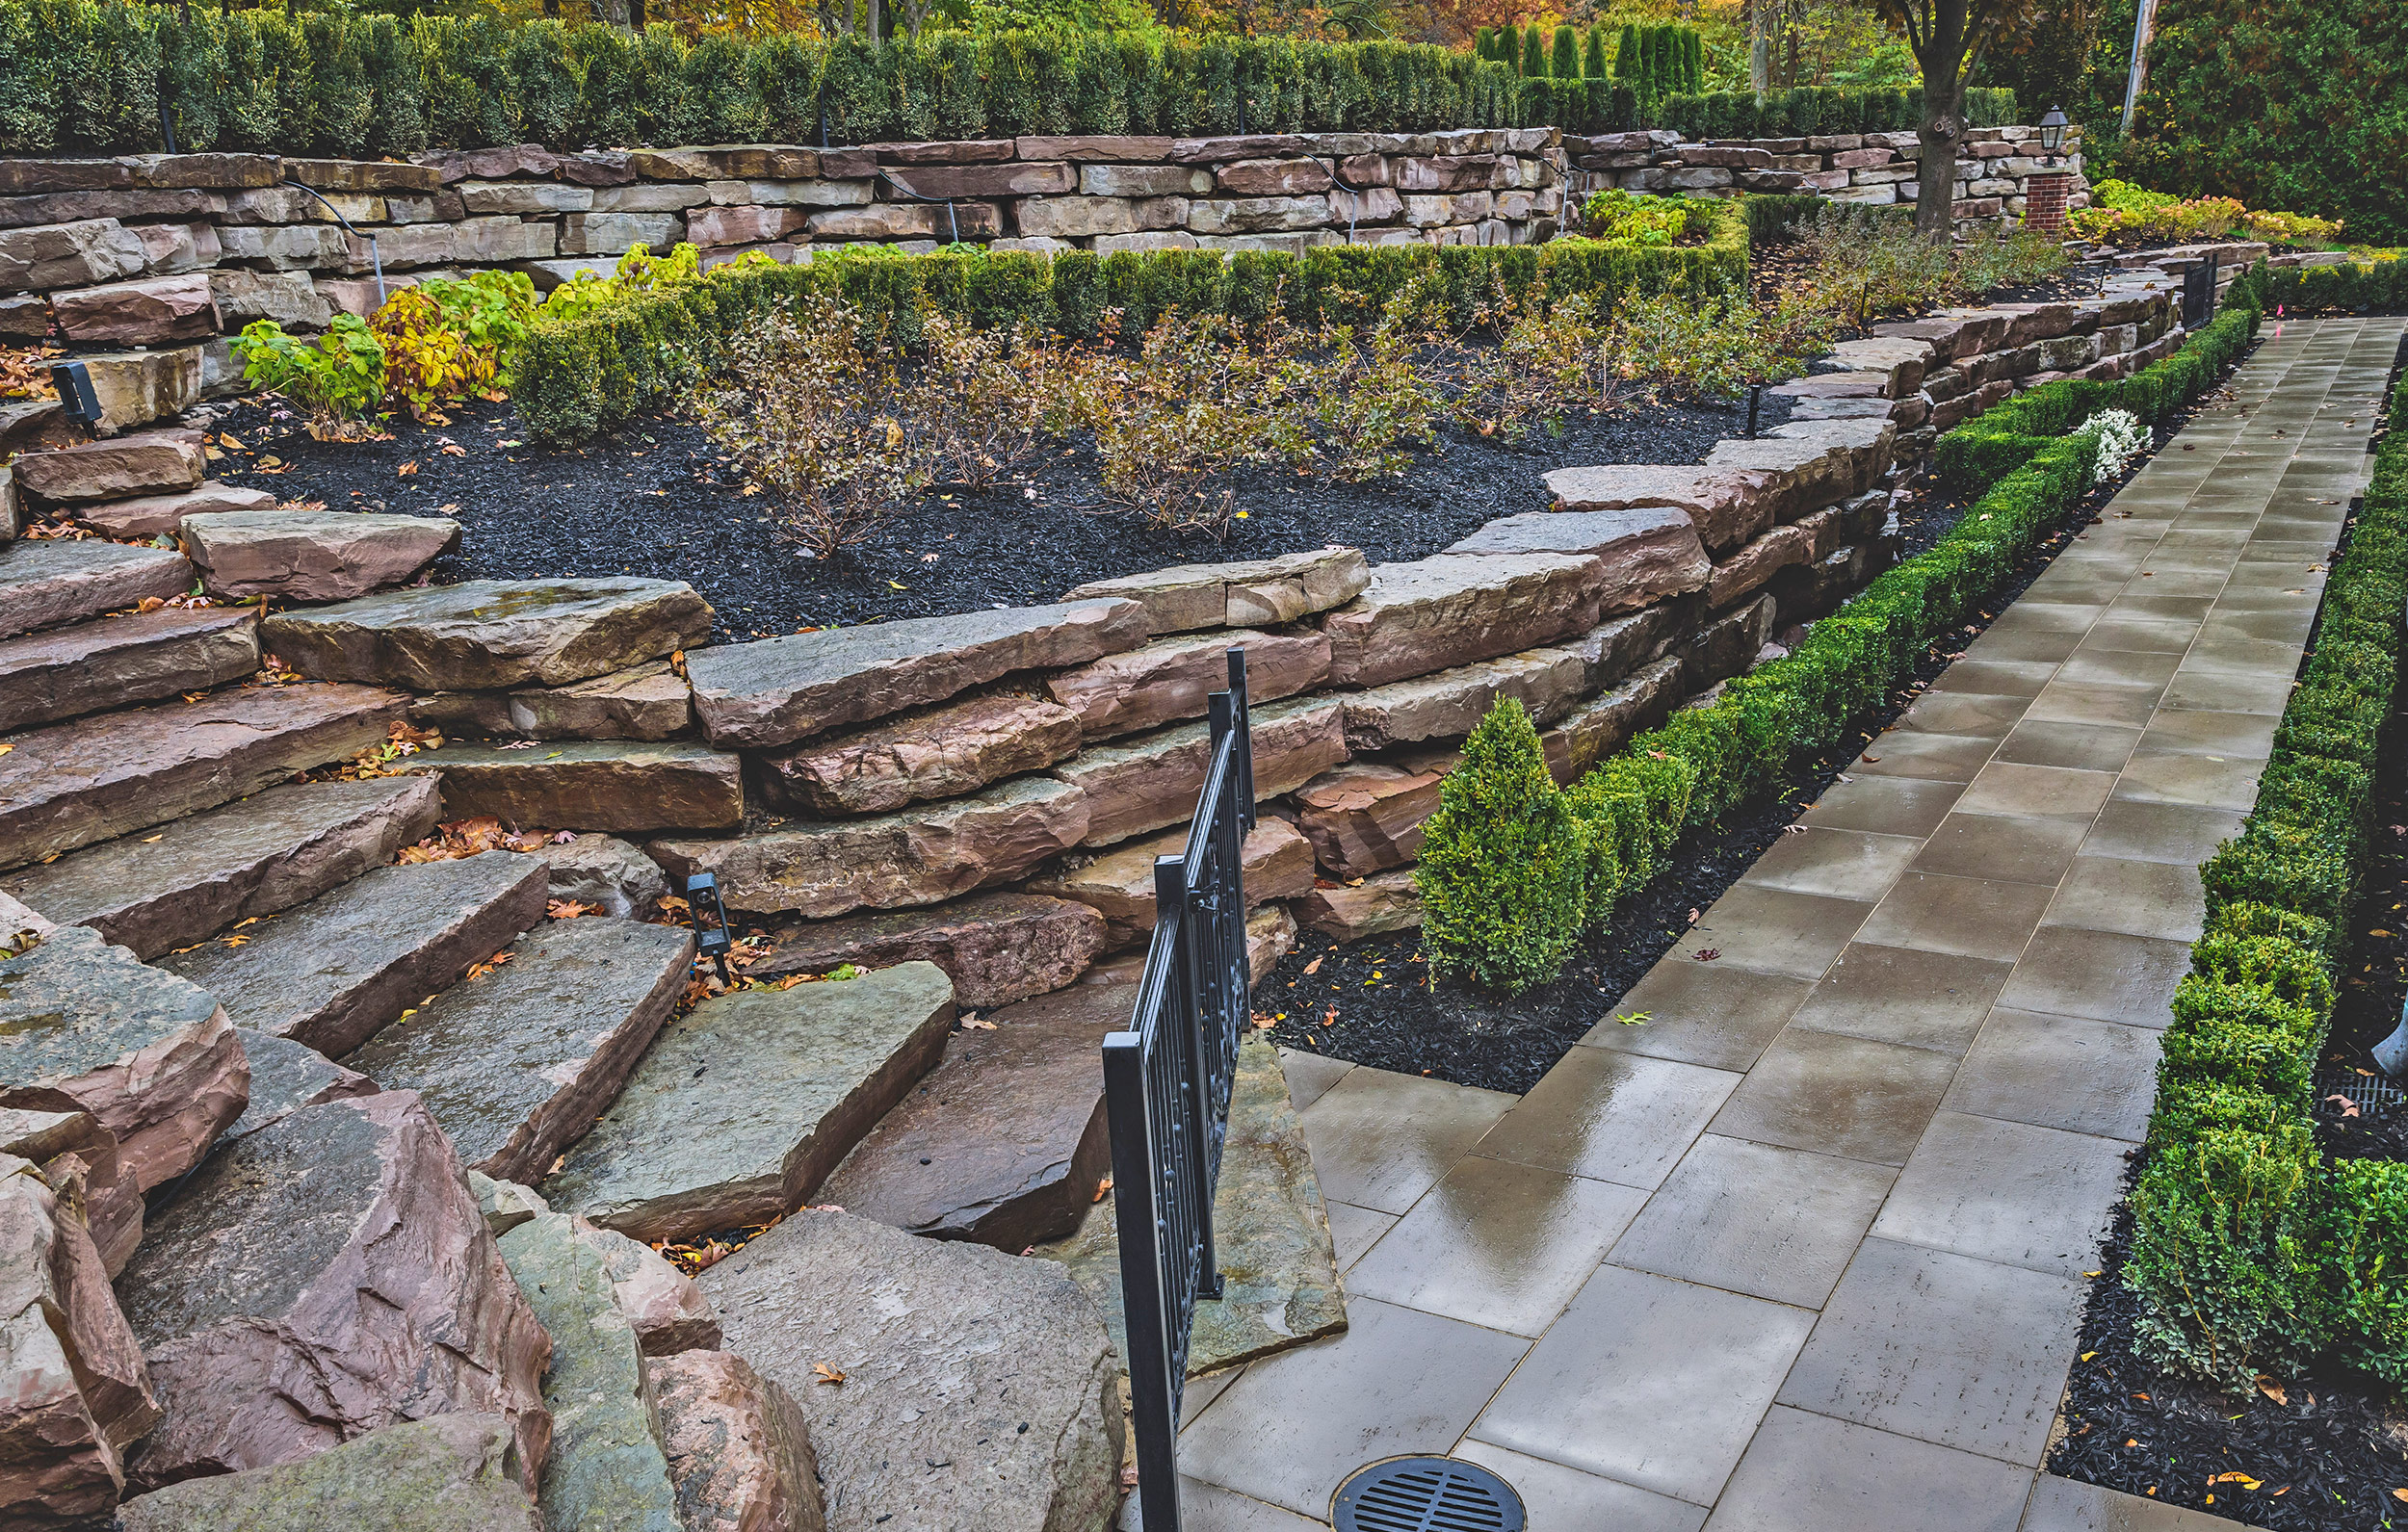 haddad-quality-landscaping-michigan-bloomfield-stately-home-02.jpg